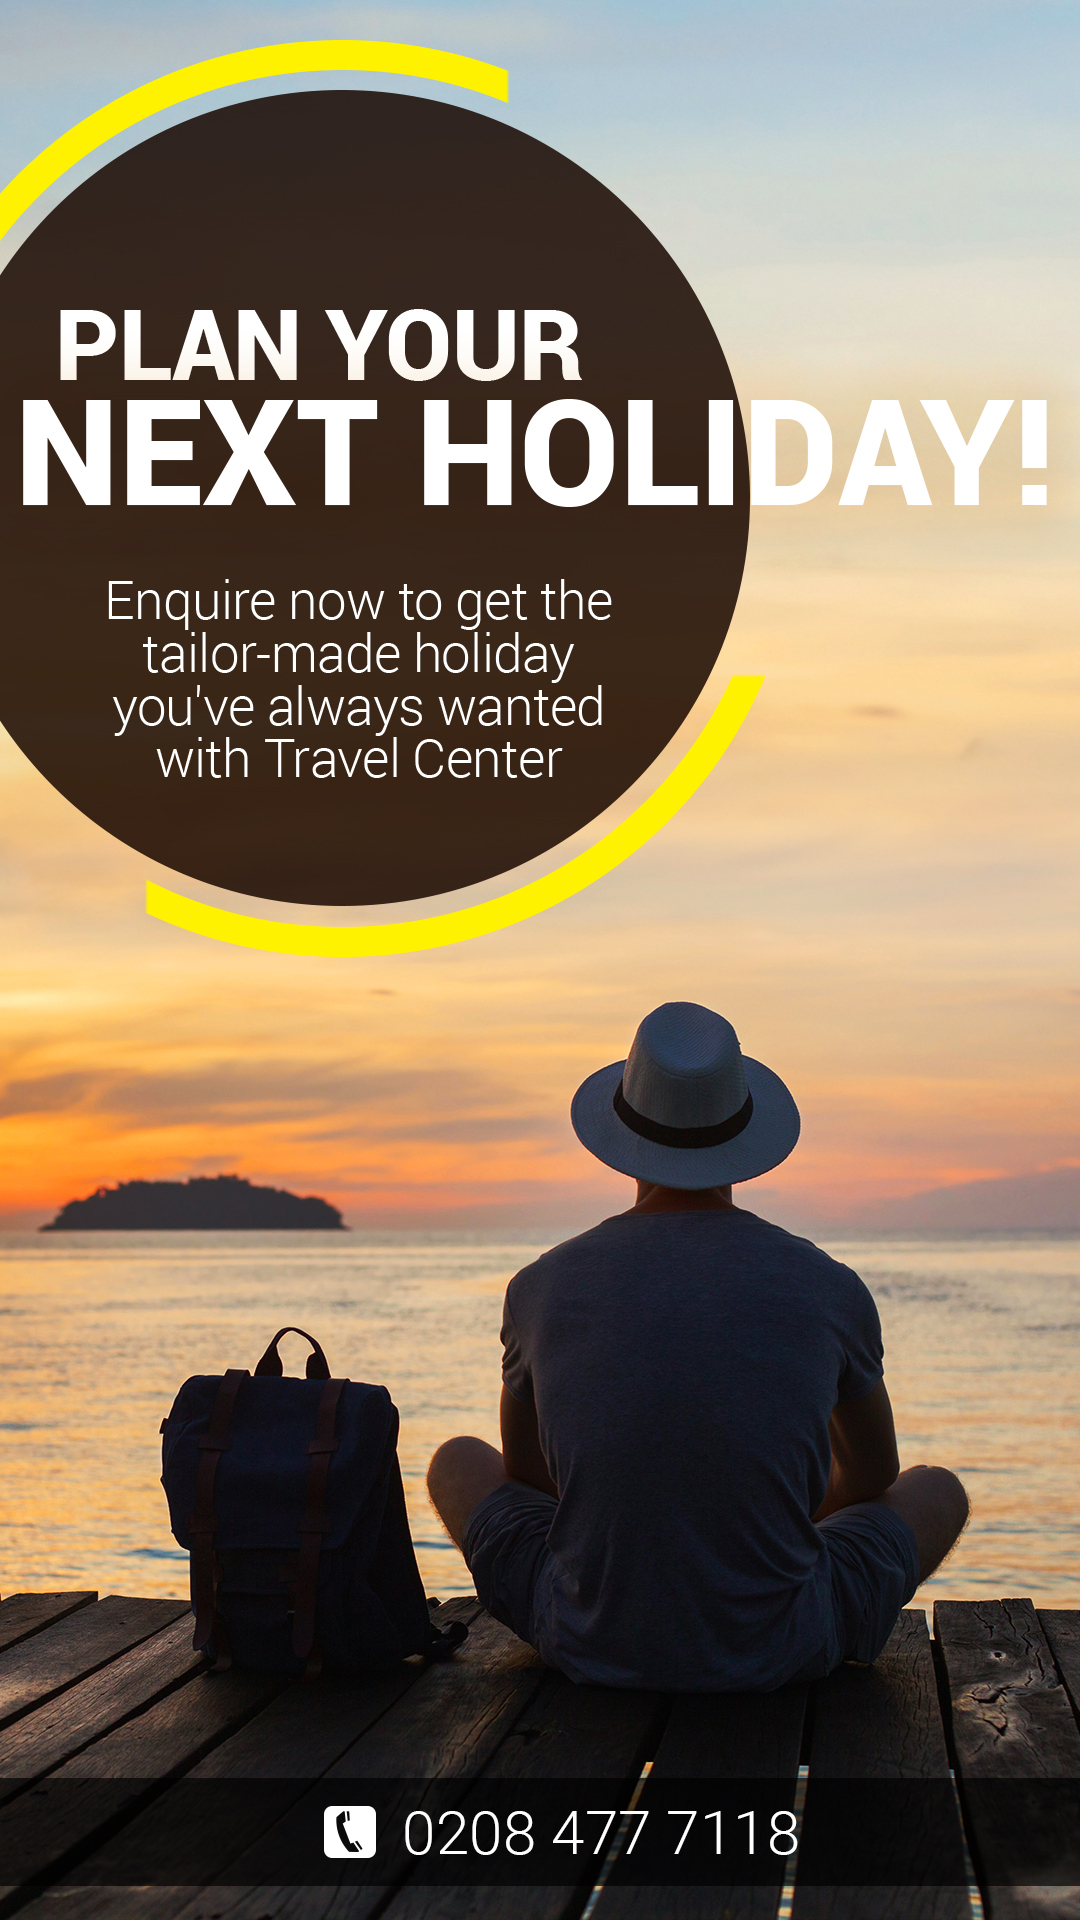 PLAN YOUR NEXT HOLIDAY